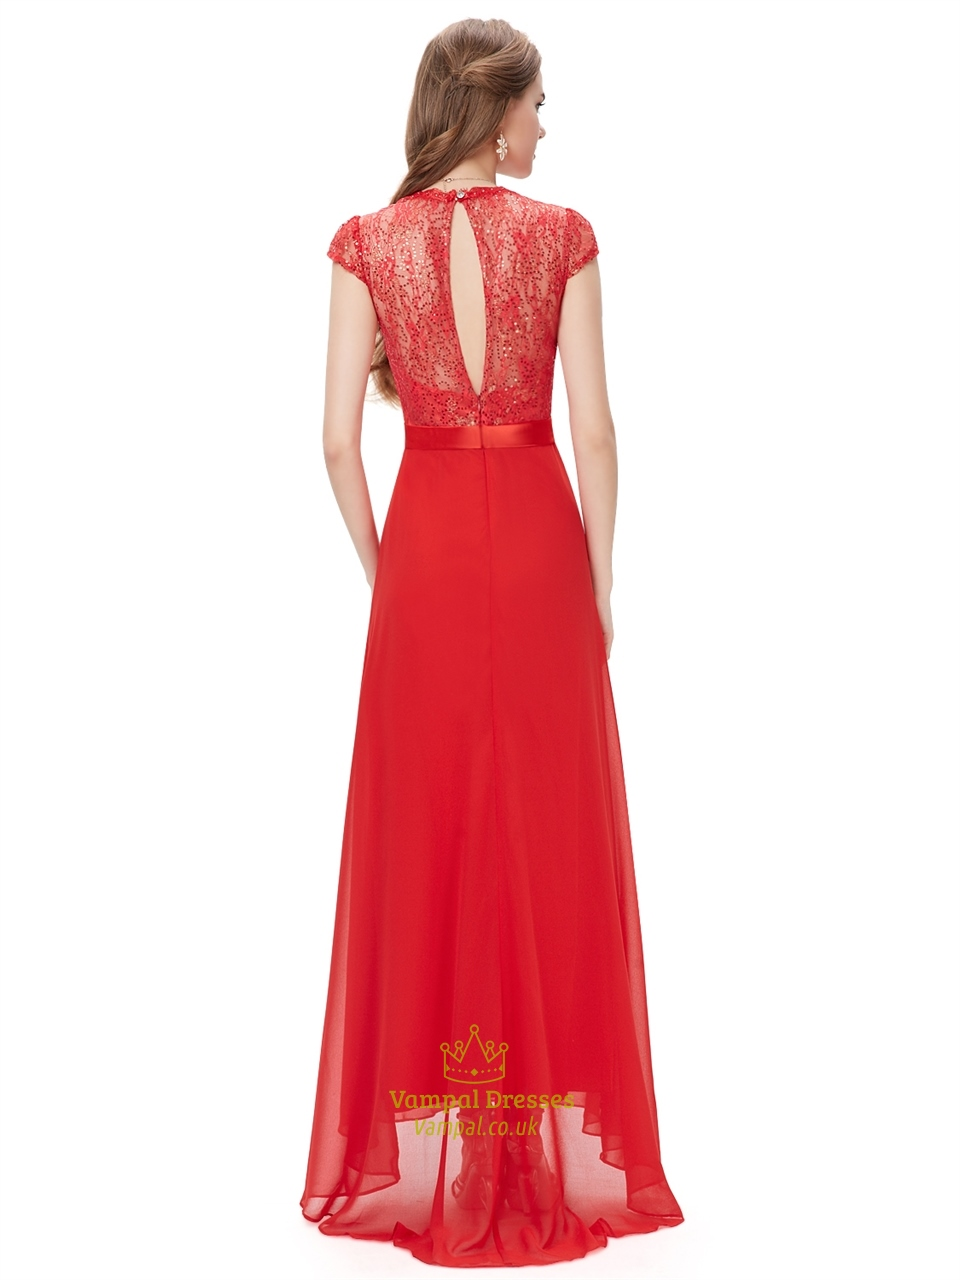 Red Long Chiffon Sequin Embellished Prom Dress With Beaded